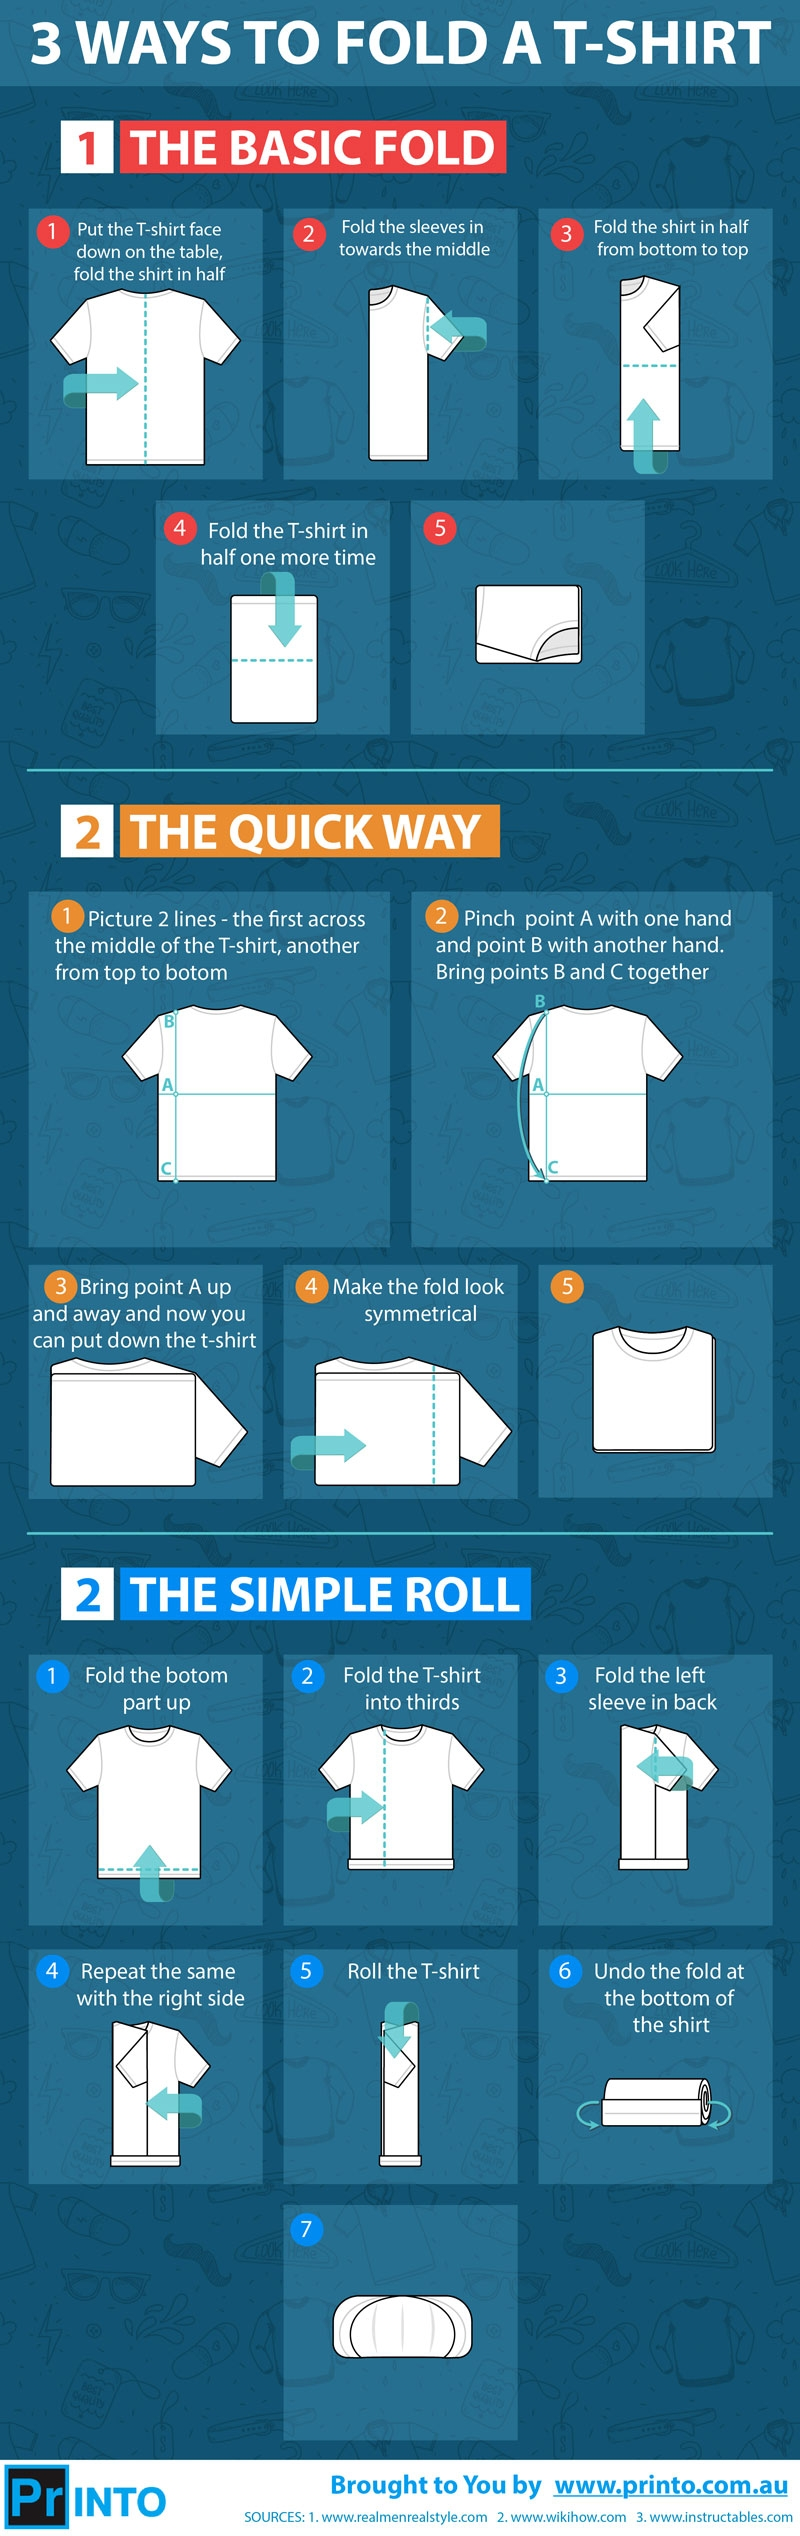 3 Ways to Fold the T-shirts